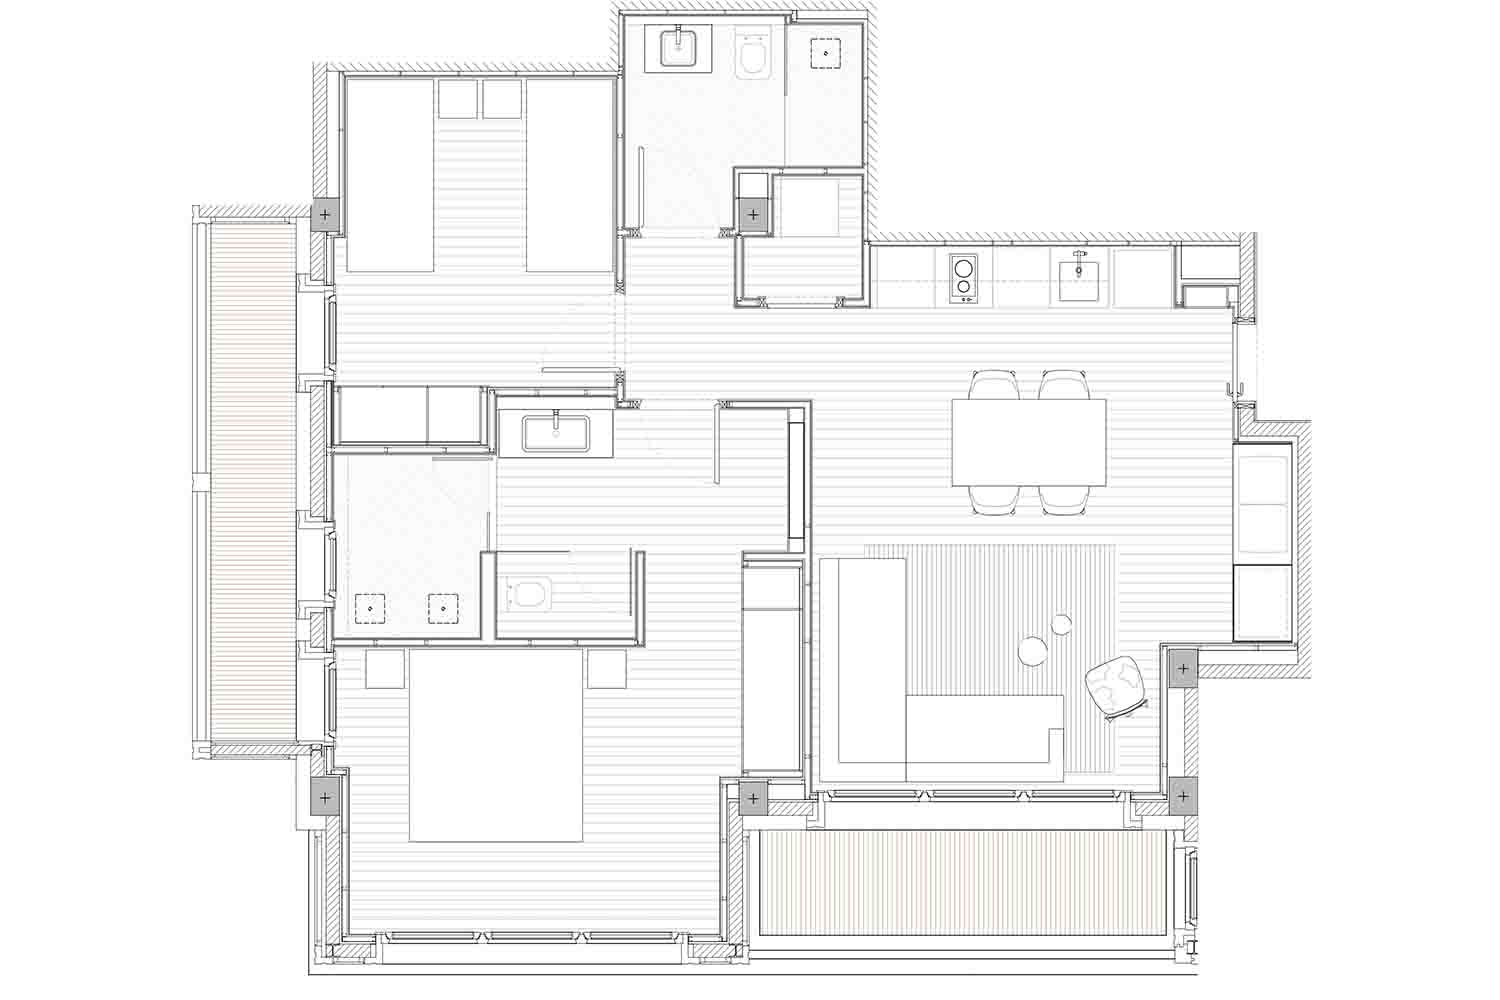 Hermitage Mountain Residences | Residencia Exclusiva Comellot 120 m2